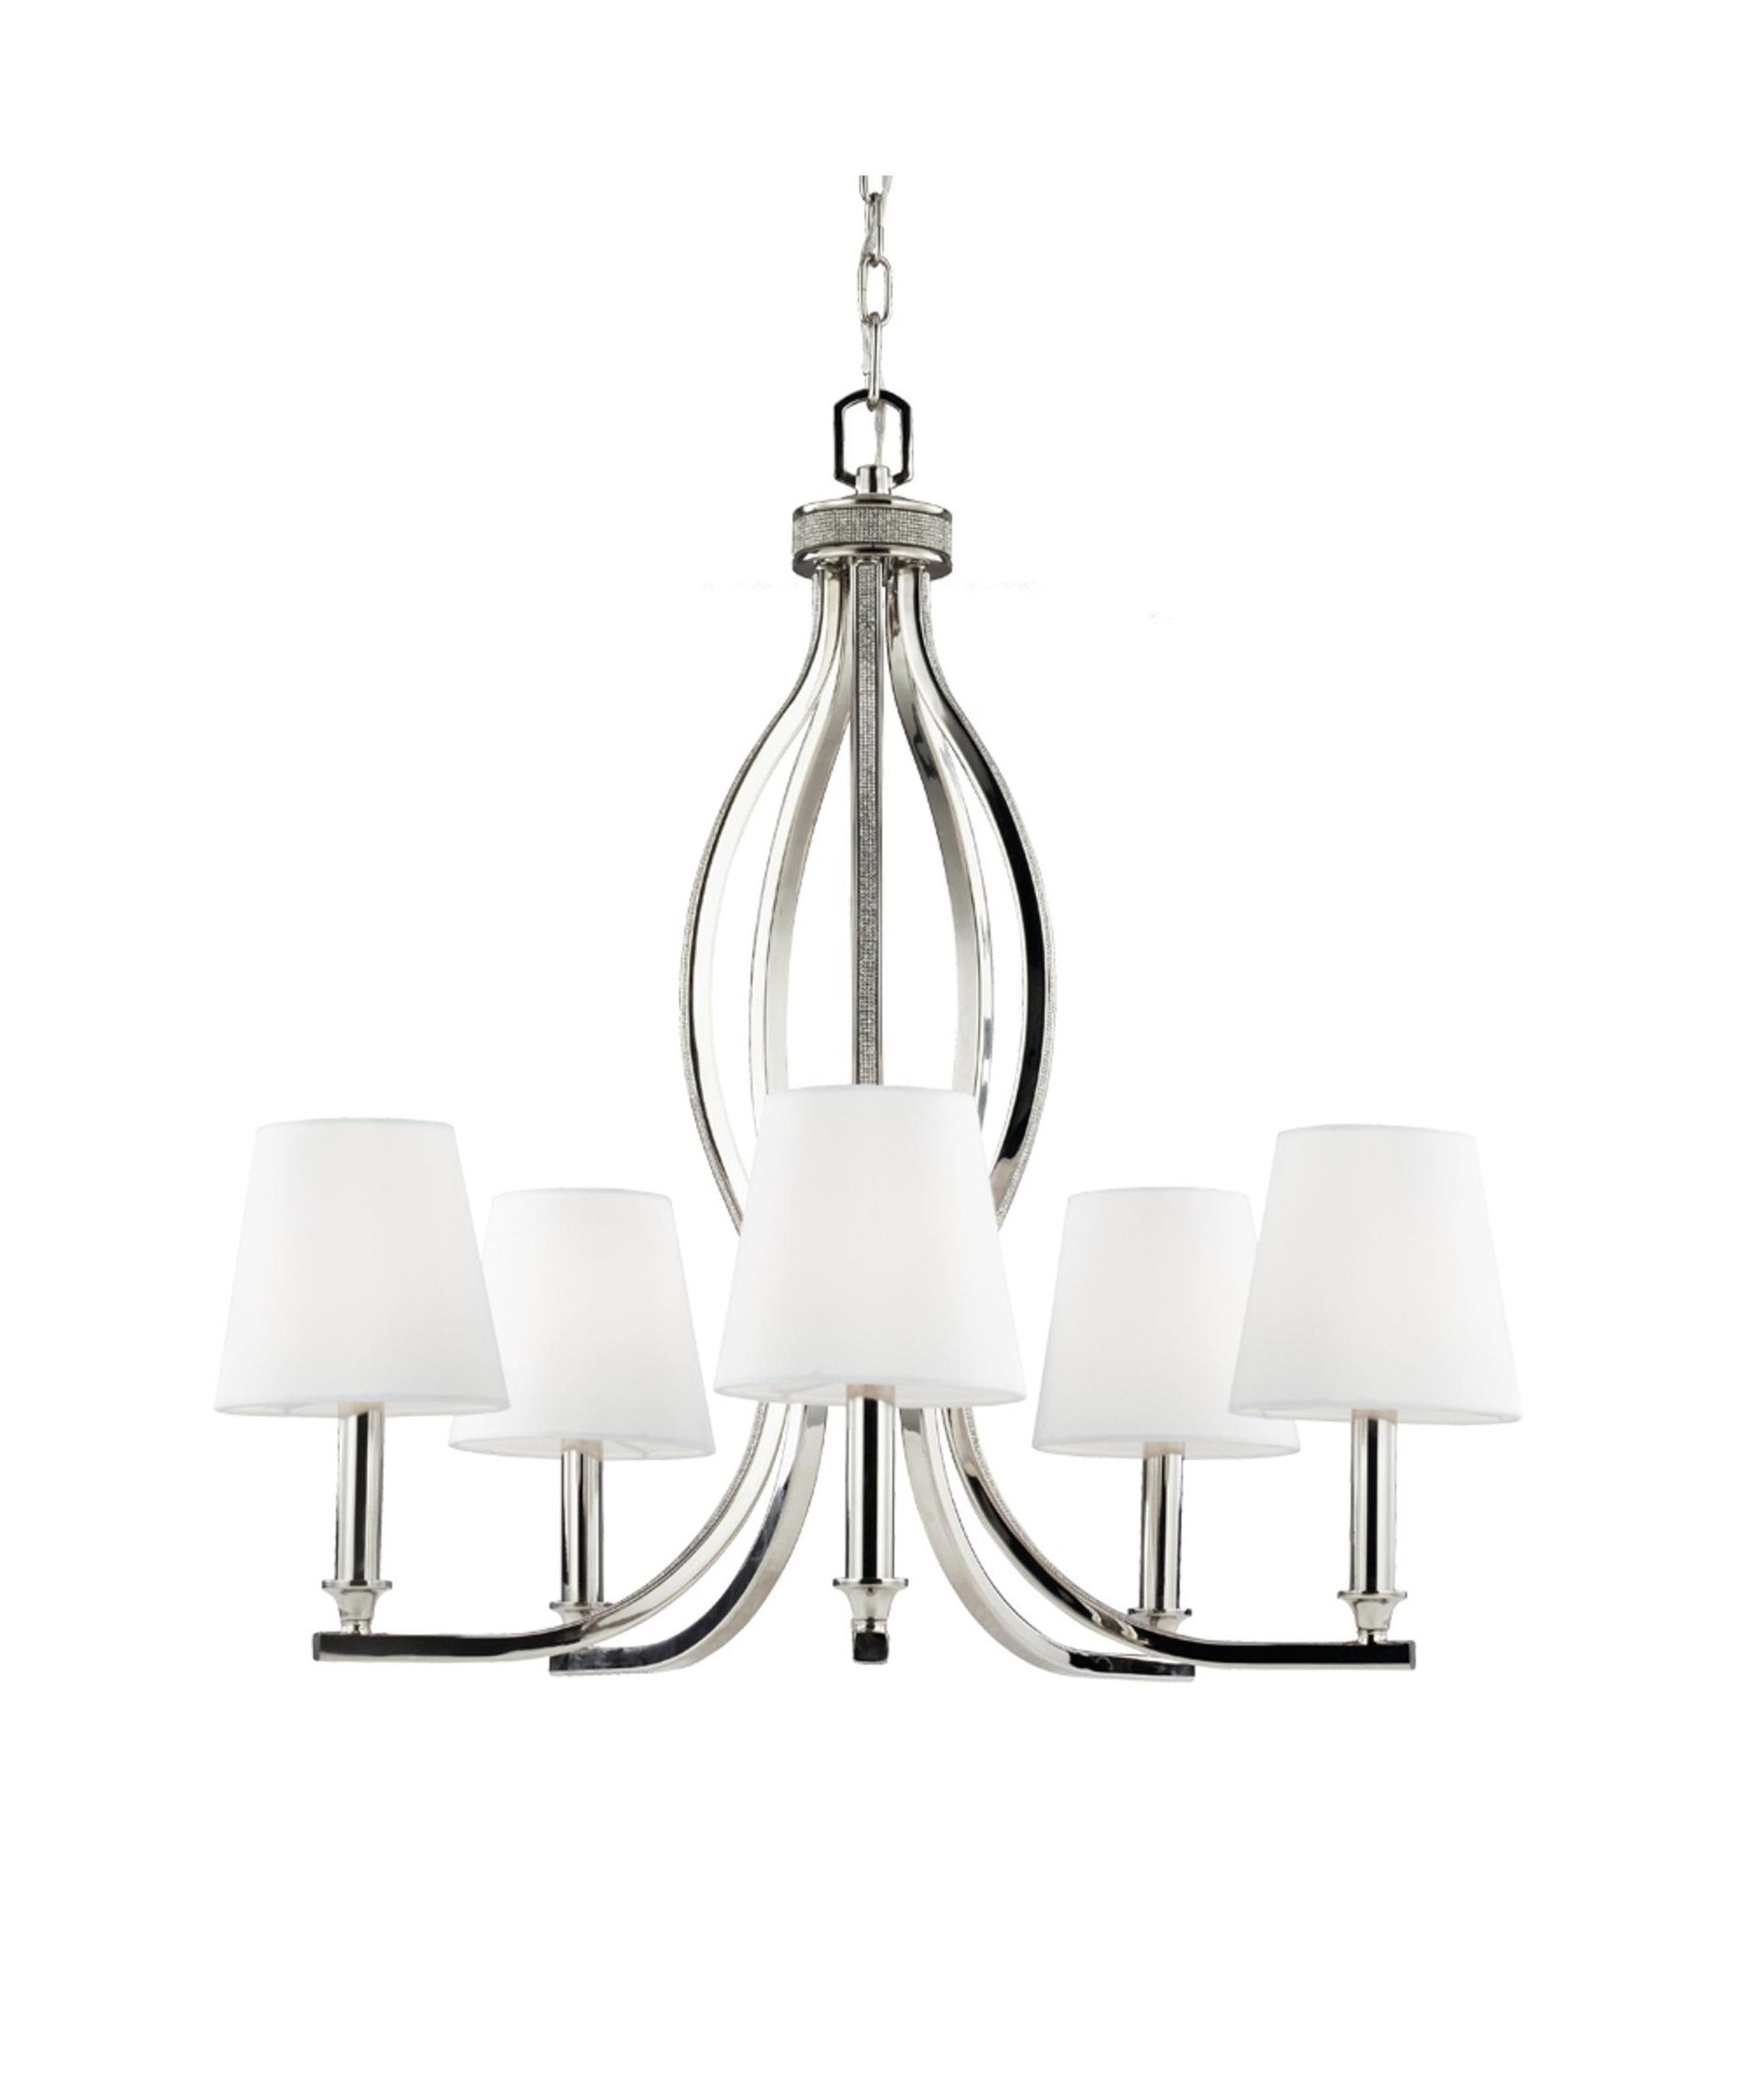 Murray Feiss F2967 5 Pave 25 Inch Wide 5 Light Chandelier (View 2 of 20)